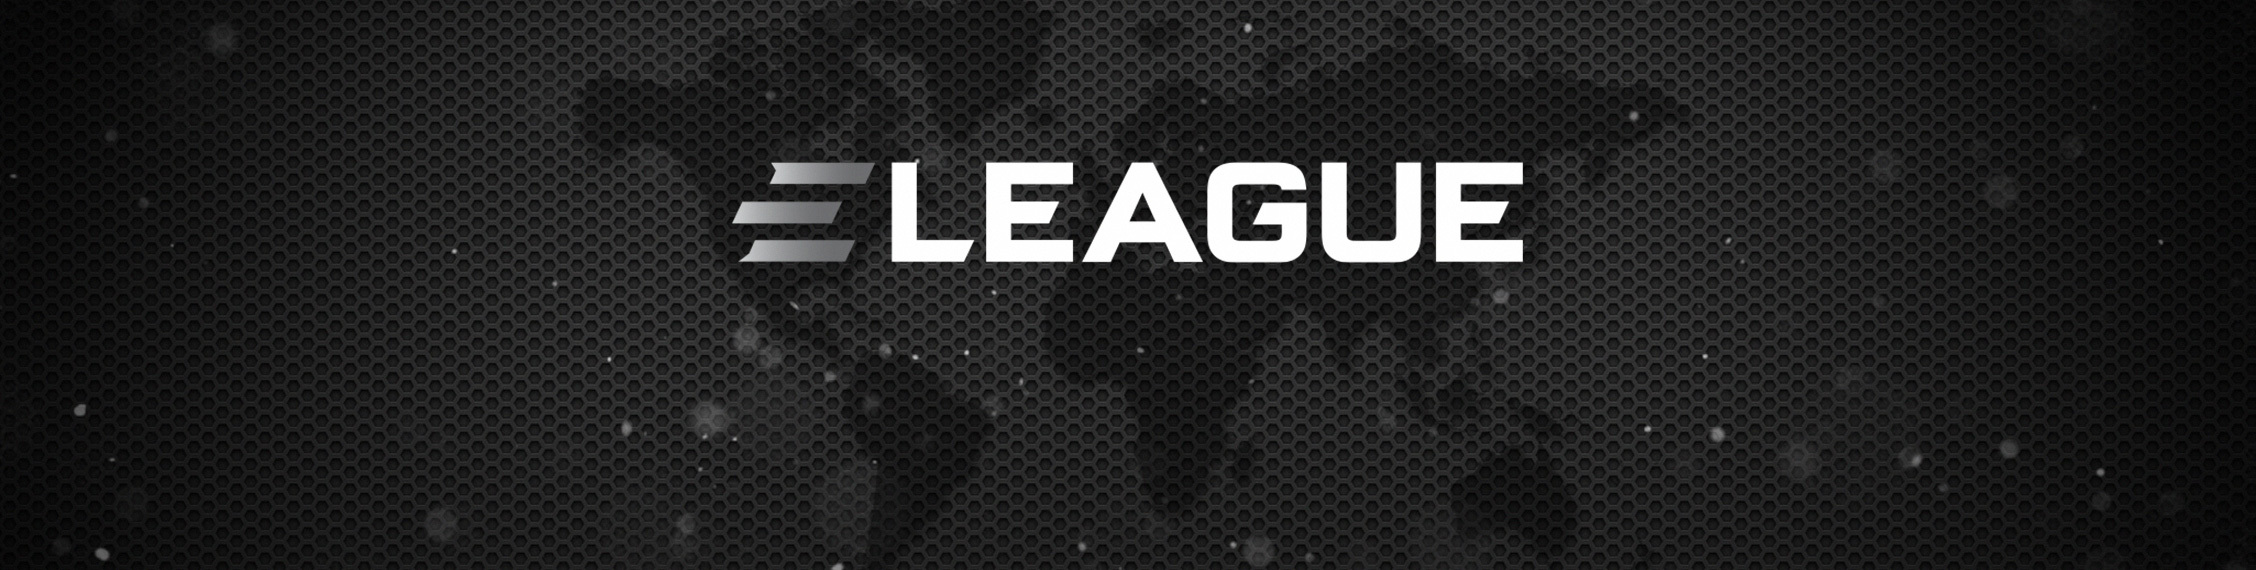 ELEAGUE Season 1